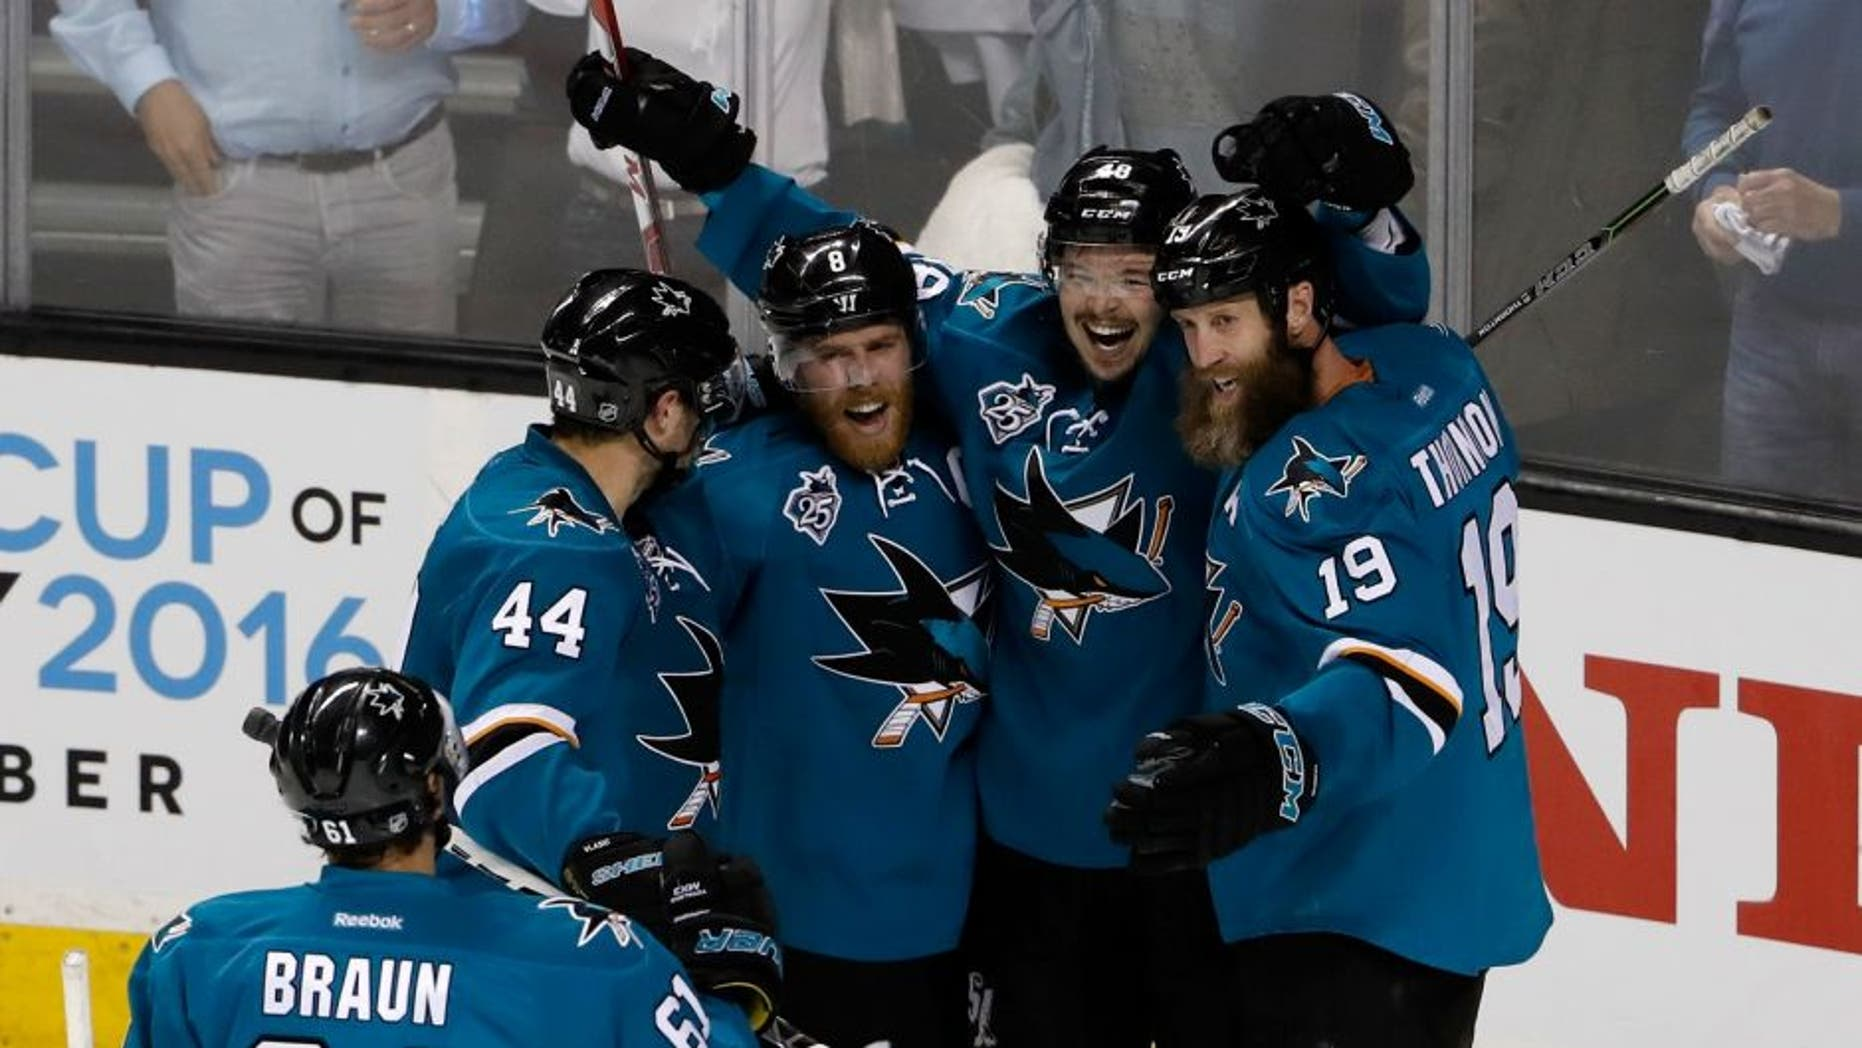 SAN JOSE, CA - MAY 19: (2nd R) Tomas Hertl #48 of the San Jose Sharks celebrates with Justin Braun #61, Marc-Edouard Vlasic #44, Joe Pavelski #8 and Joe Thornton #19 after his second goal in game three of the Western Conference Finals against the St. Louis Blues during the 2016 NHL Stanley Cup Playoffs at SAP Center on May 19, 2016 in San Jose, California. (Photo by Christian Petersen/Getty Images)